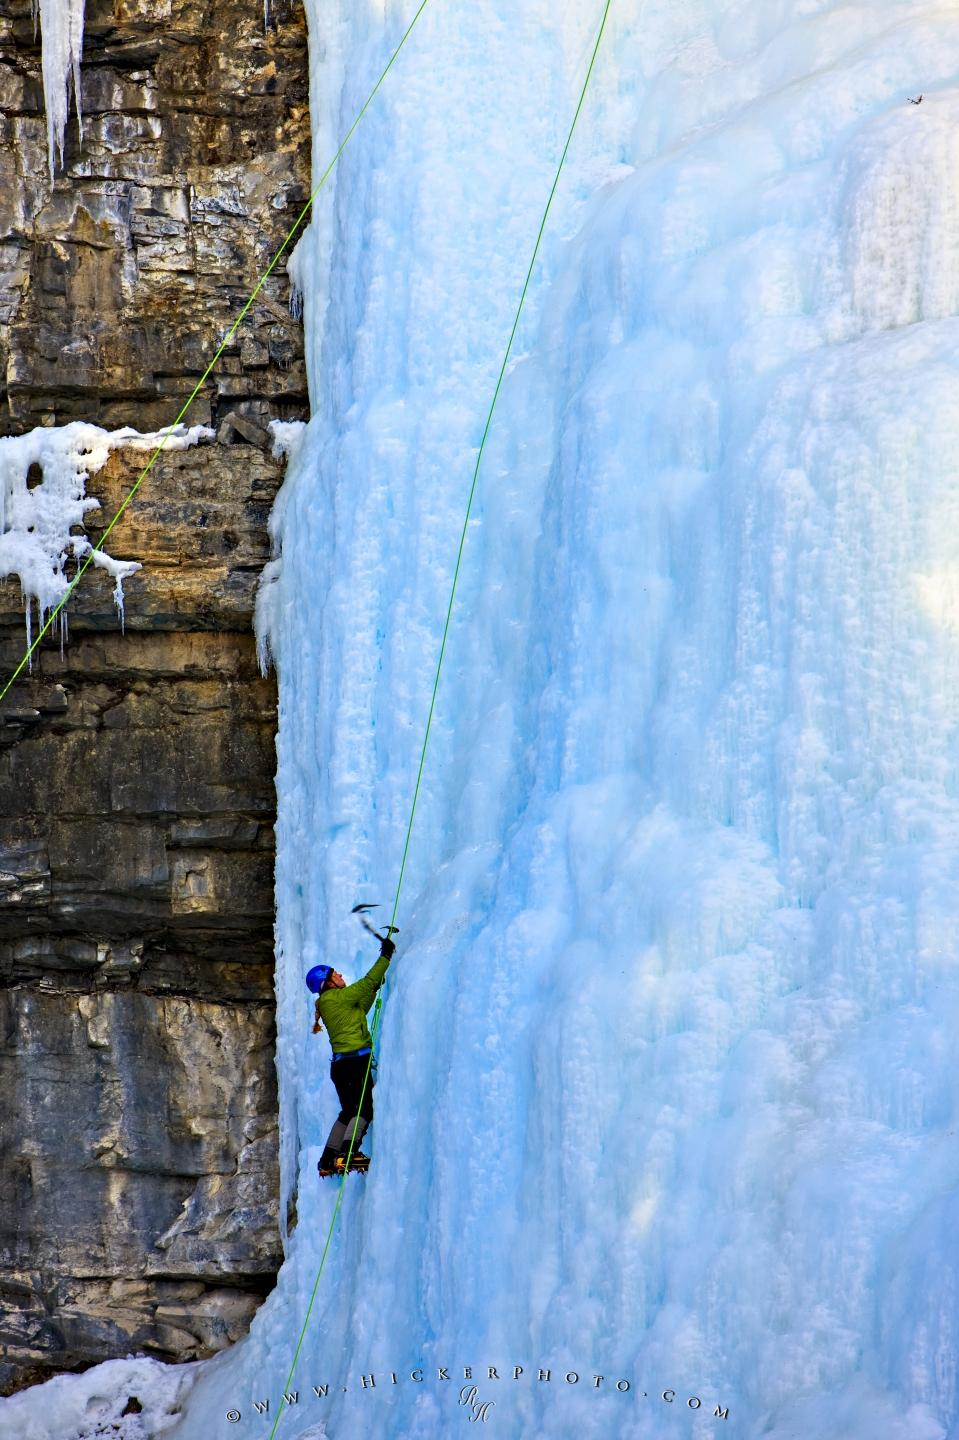 ice climbing wallpaper - photo #24